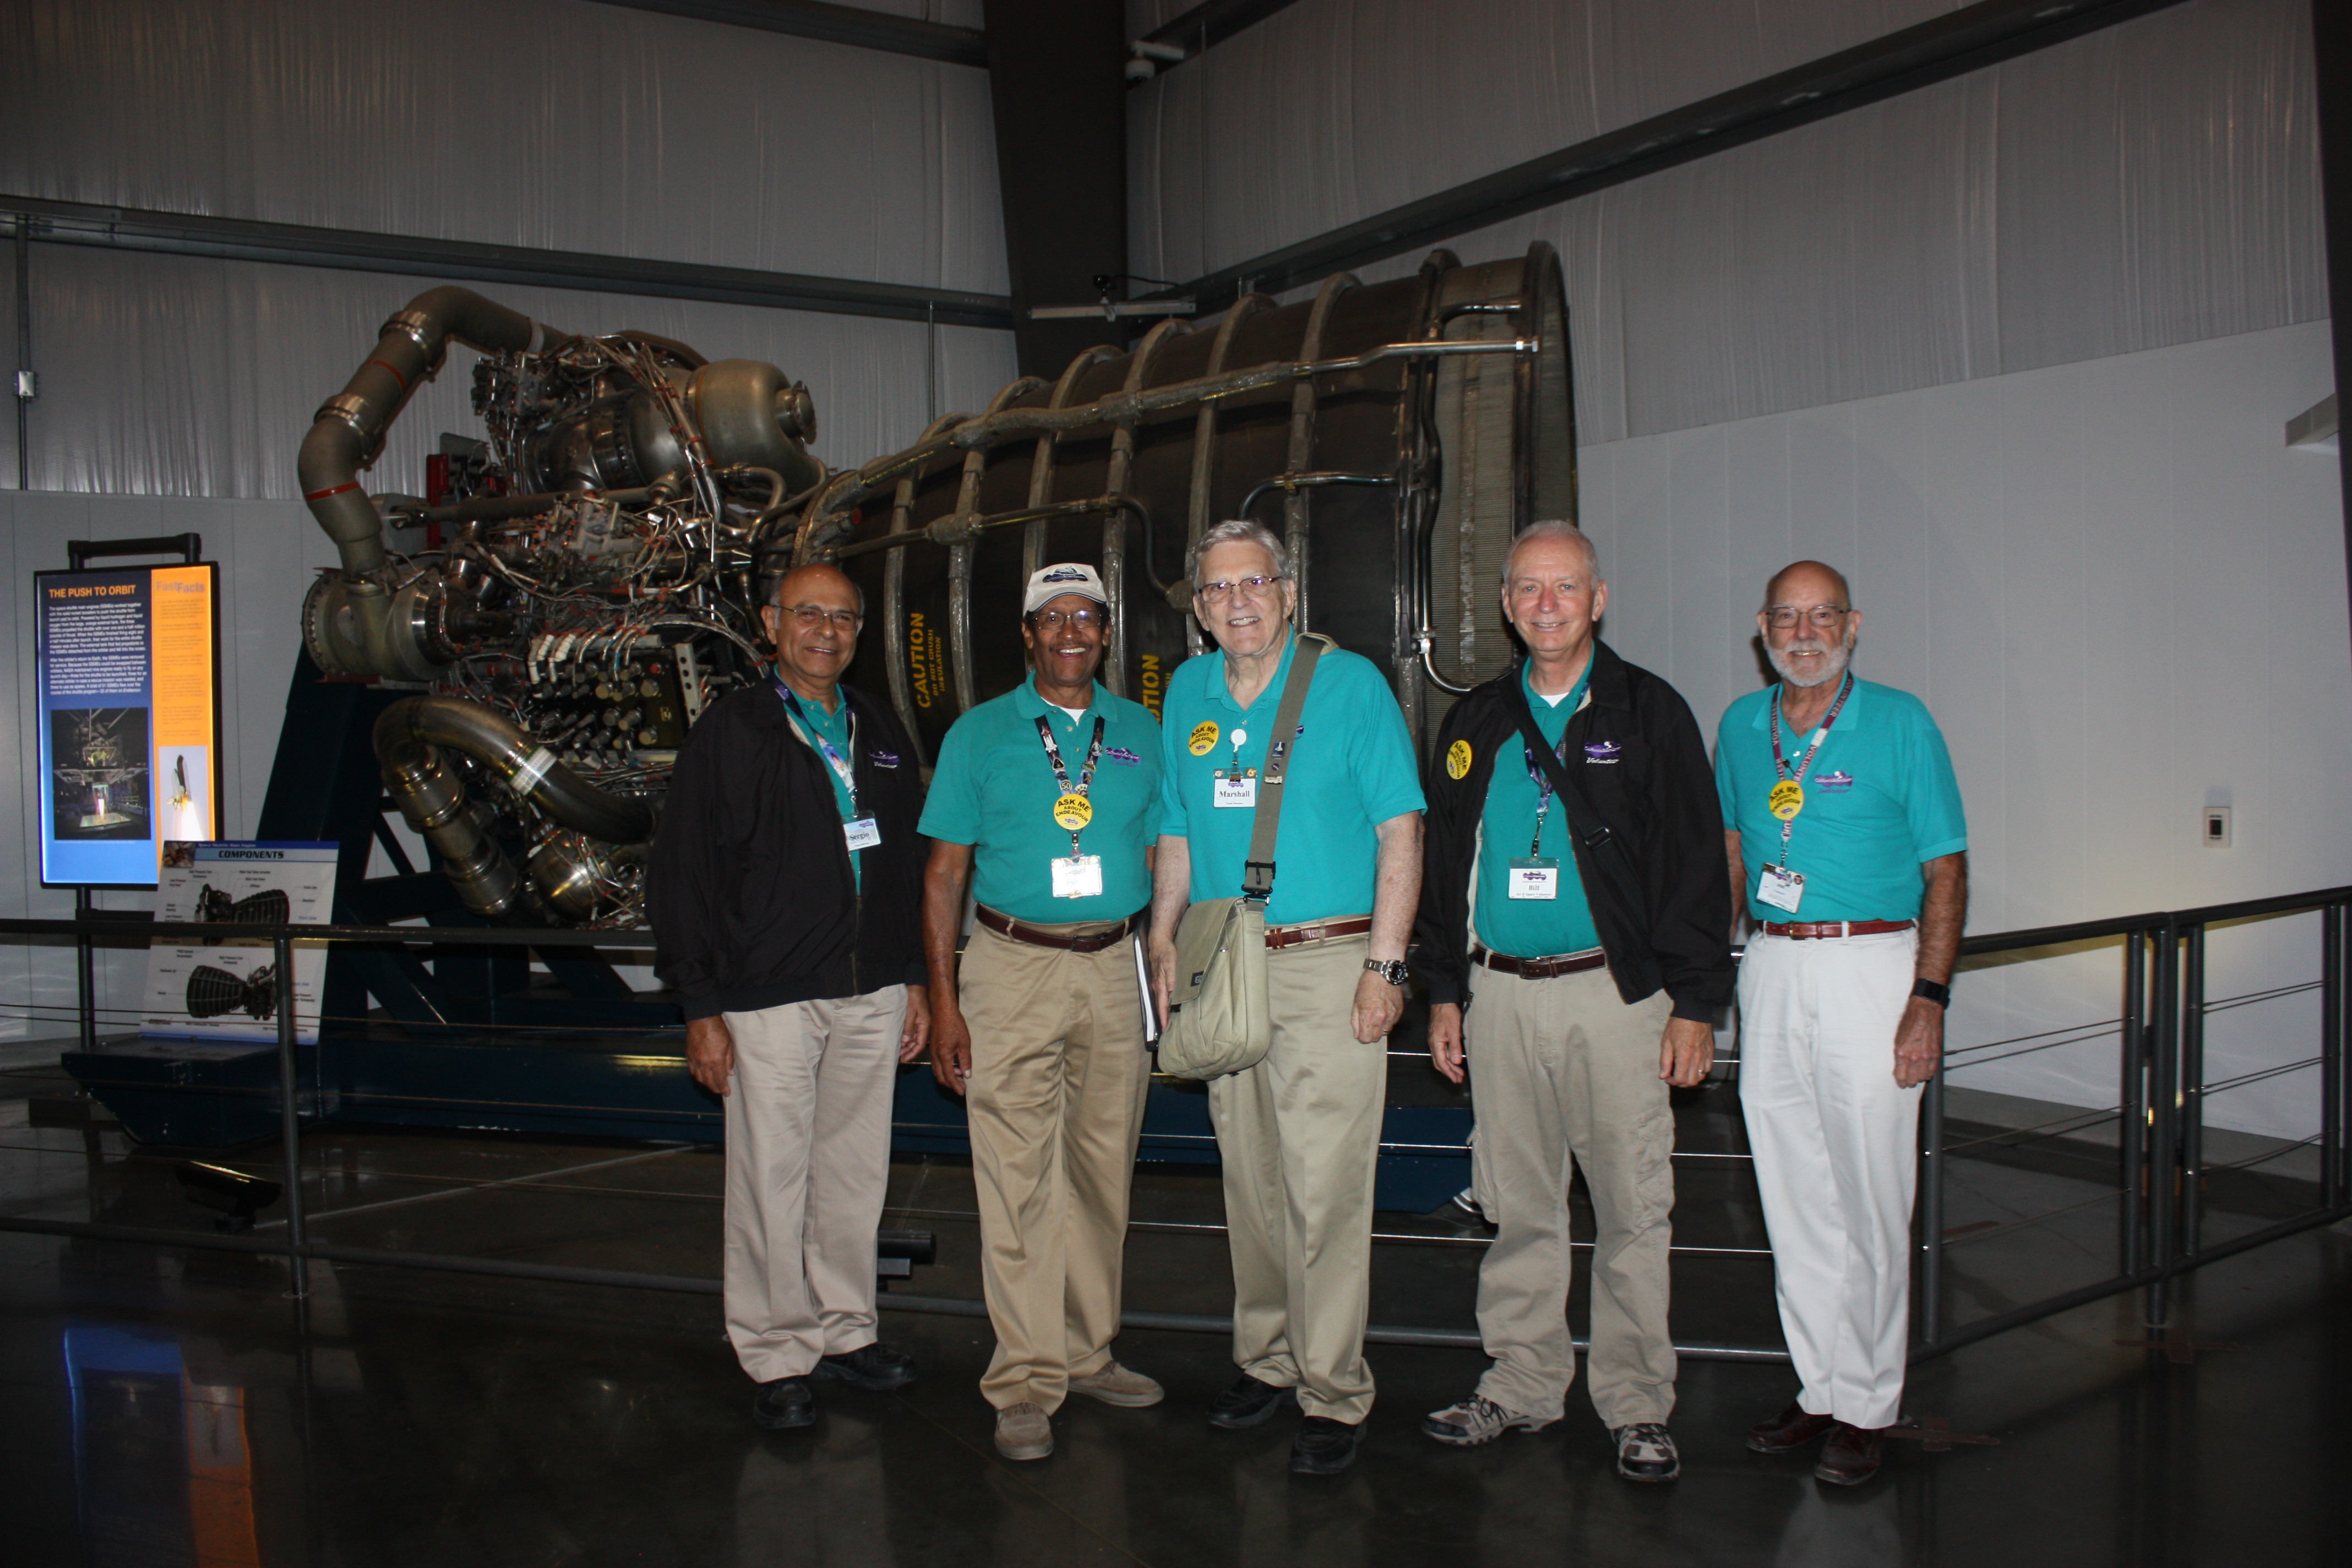 Five Air & Space Volunteers in teal polos and khaki pants uniforms pose in front of Space Shuttle Main Engine on display in the Samuel Oschin Pavilion